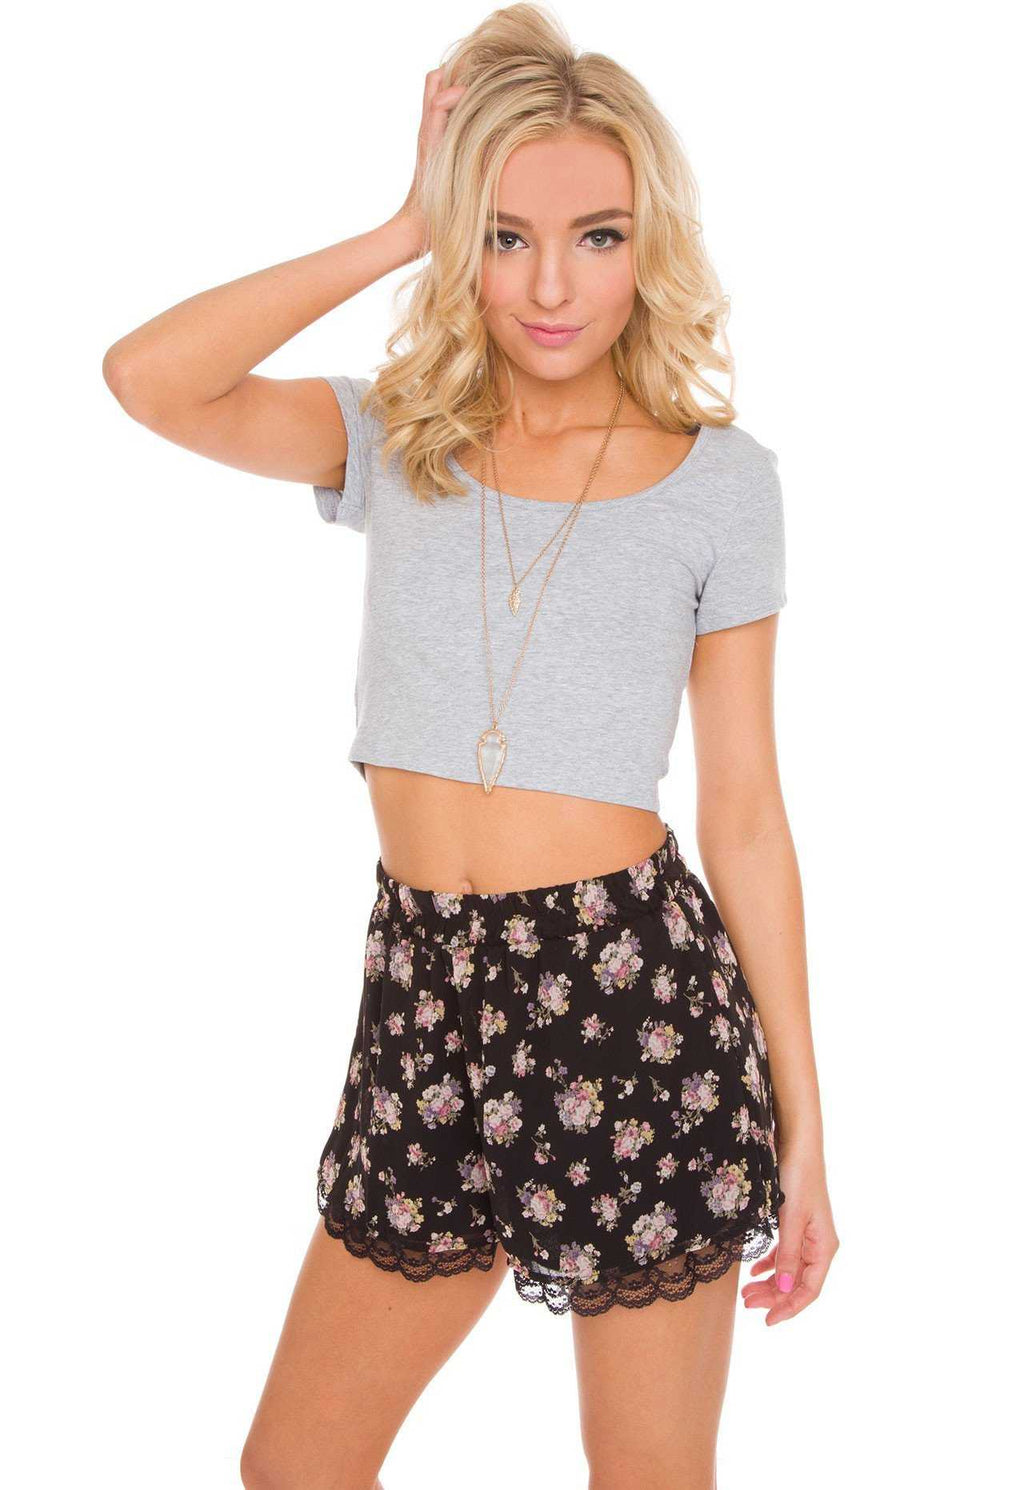 Tops - Lucy Basic Crop Top - Gray